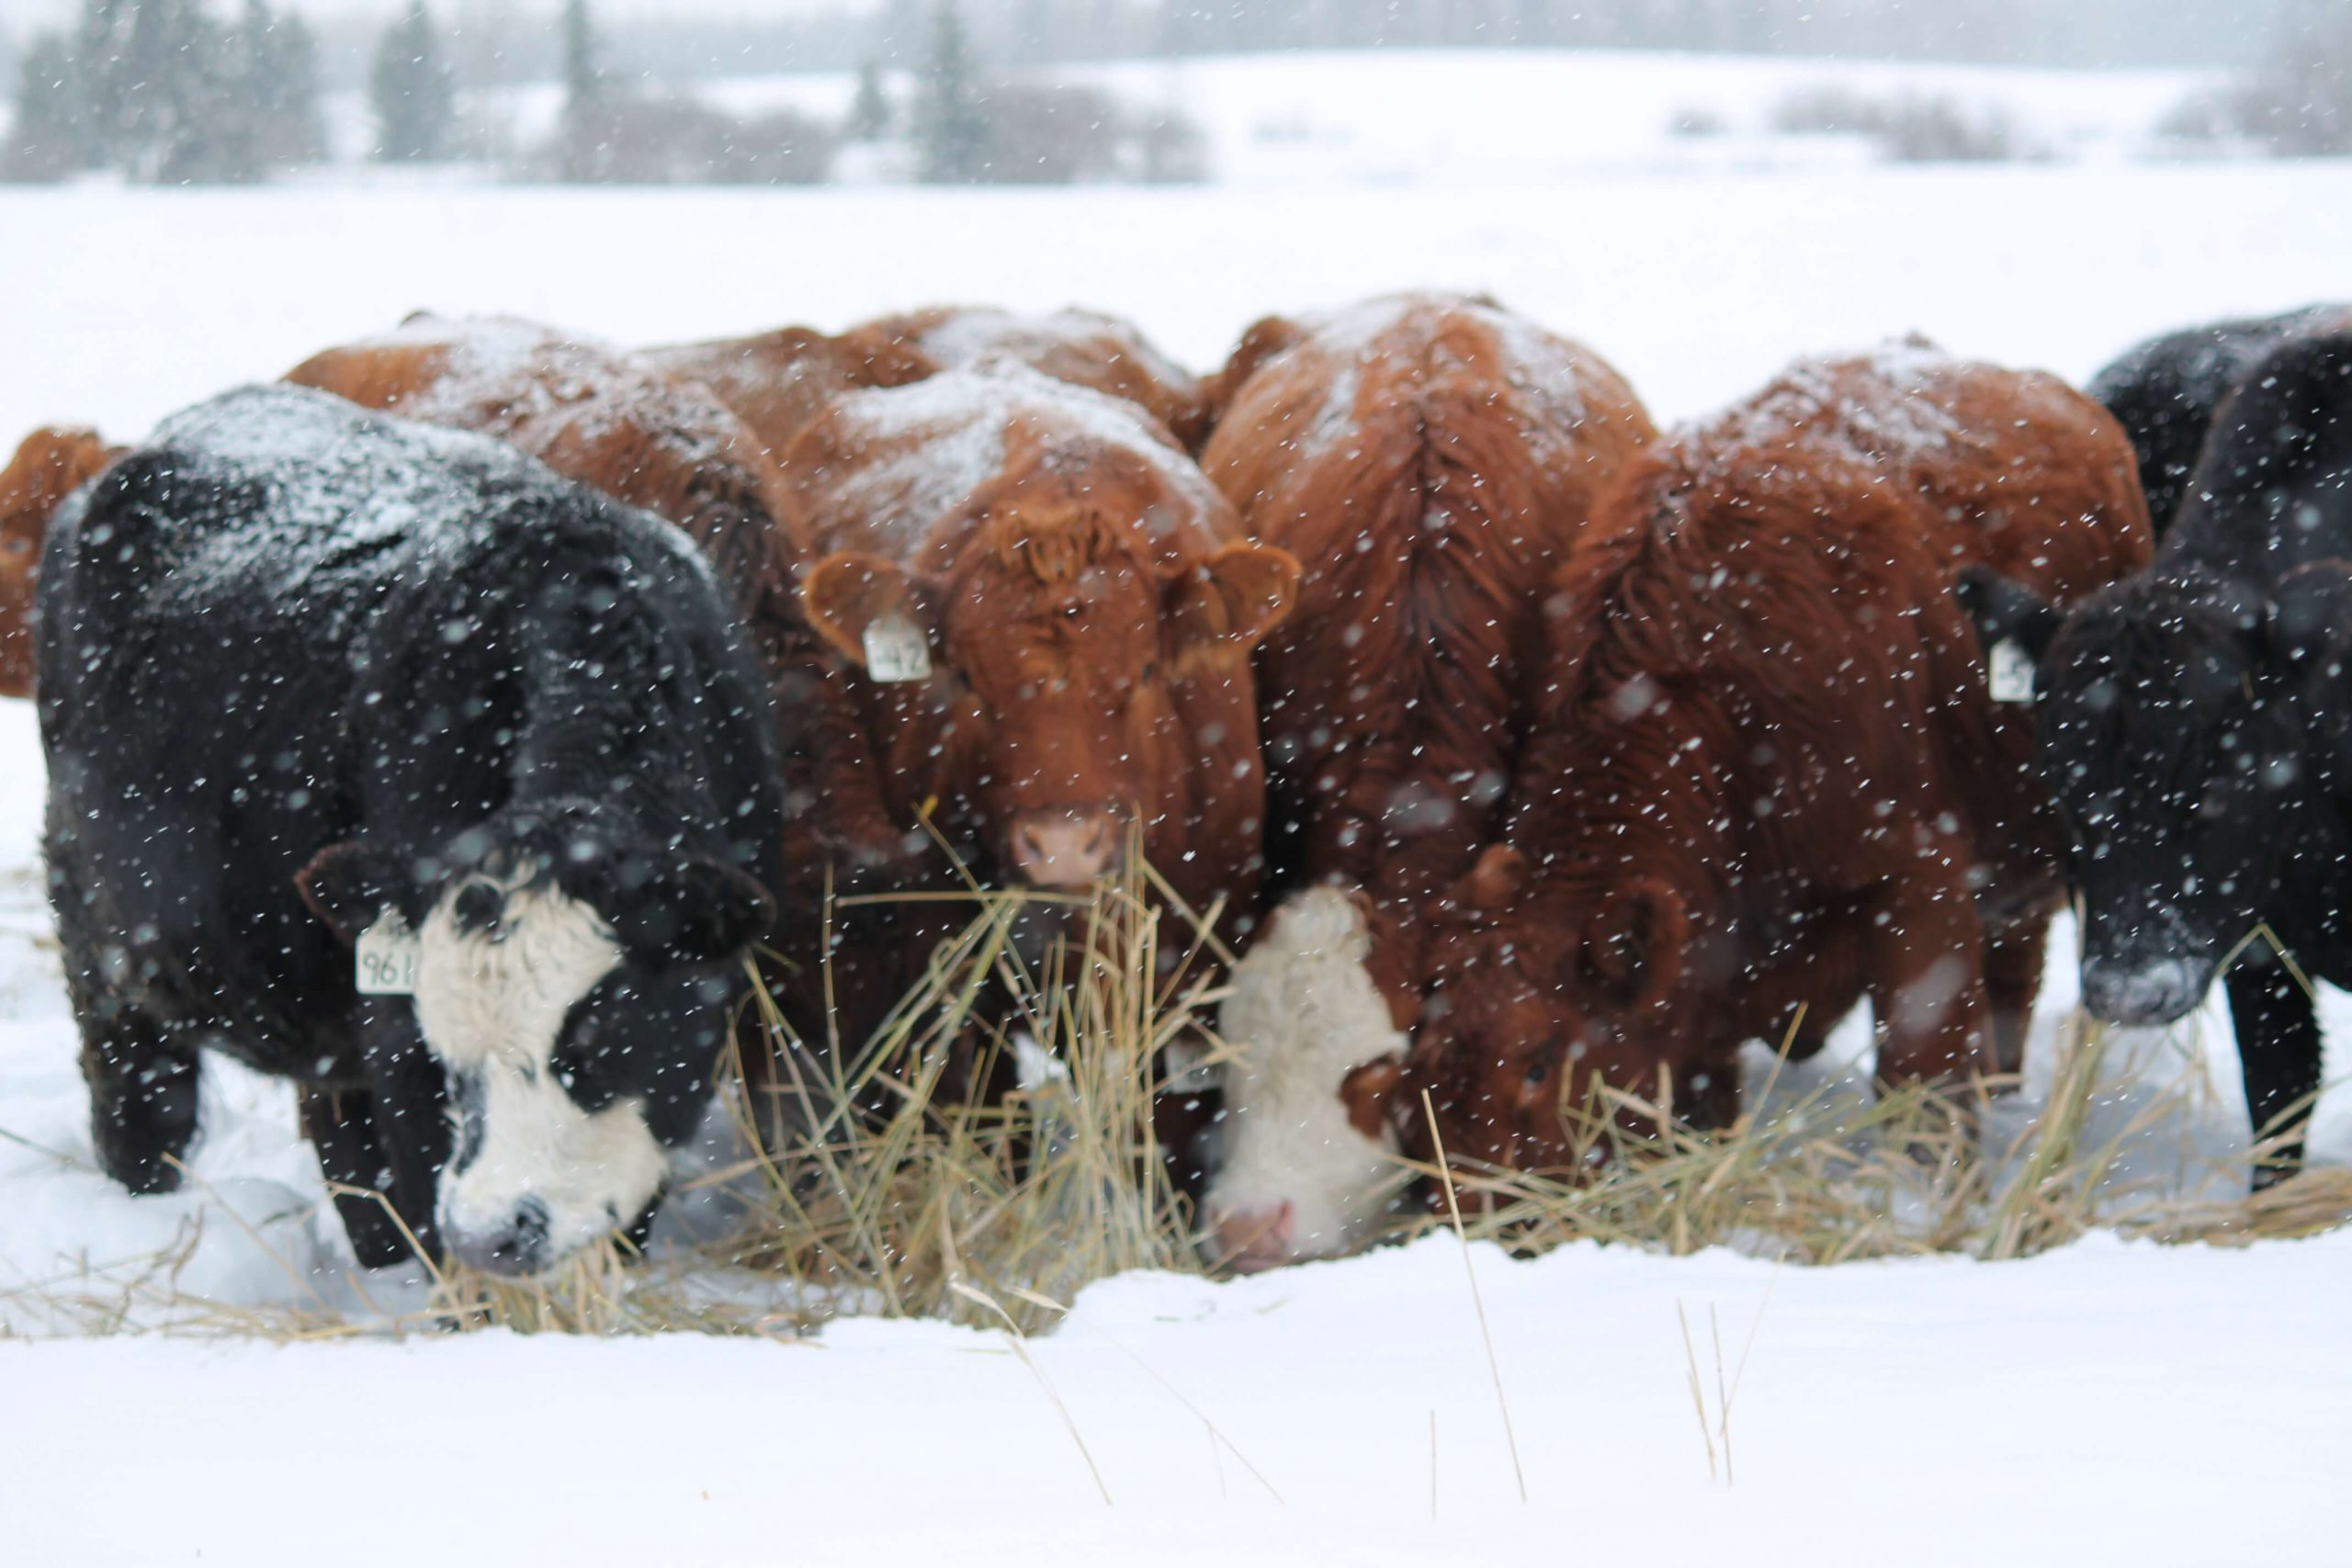 Study Recommends Later Swathing For Cattle Feed